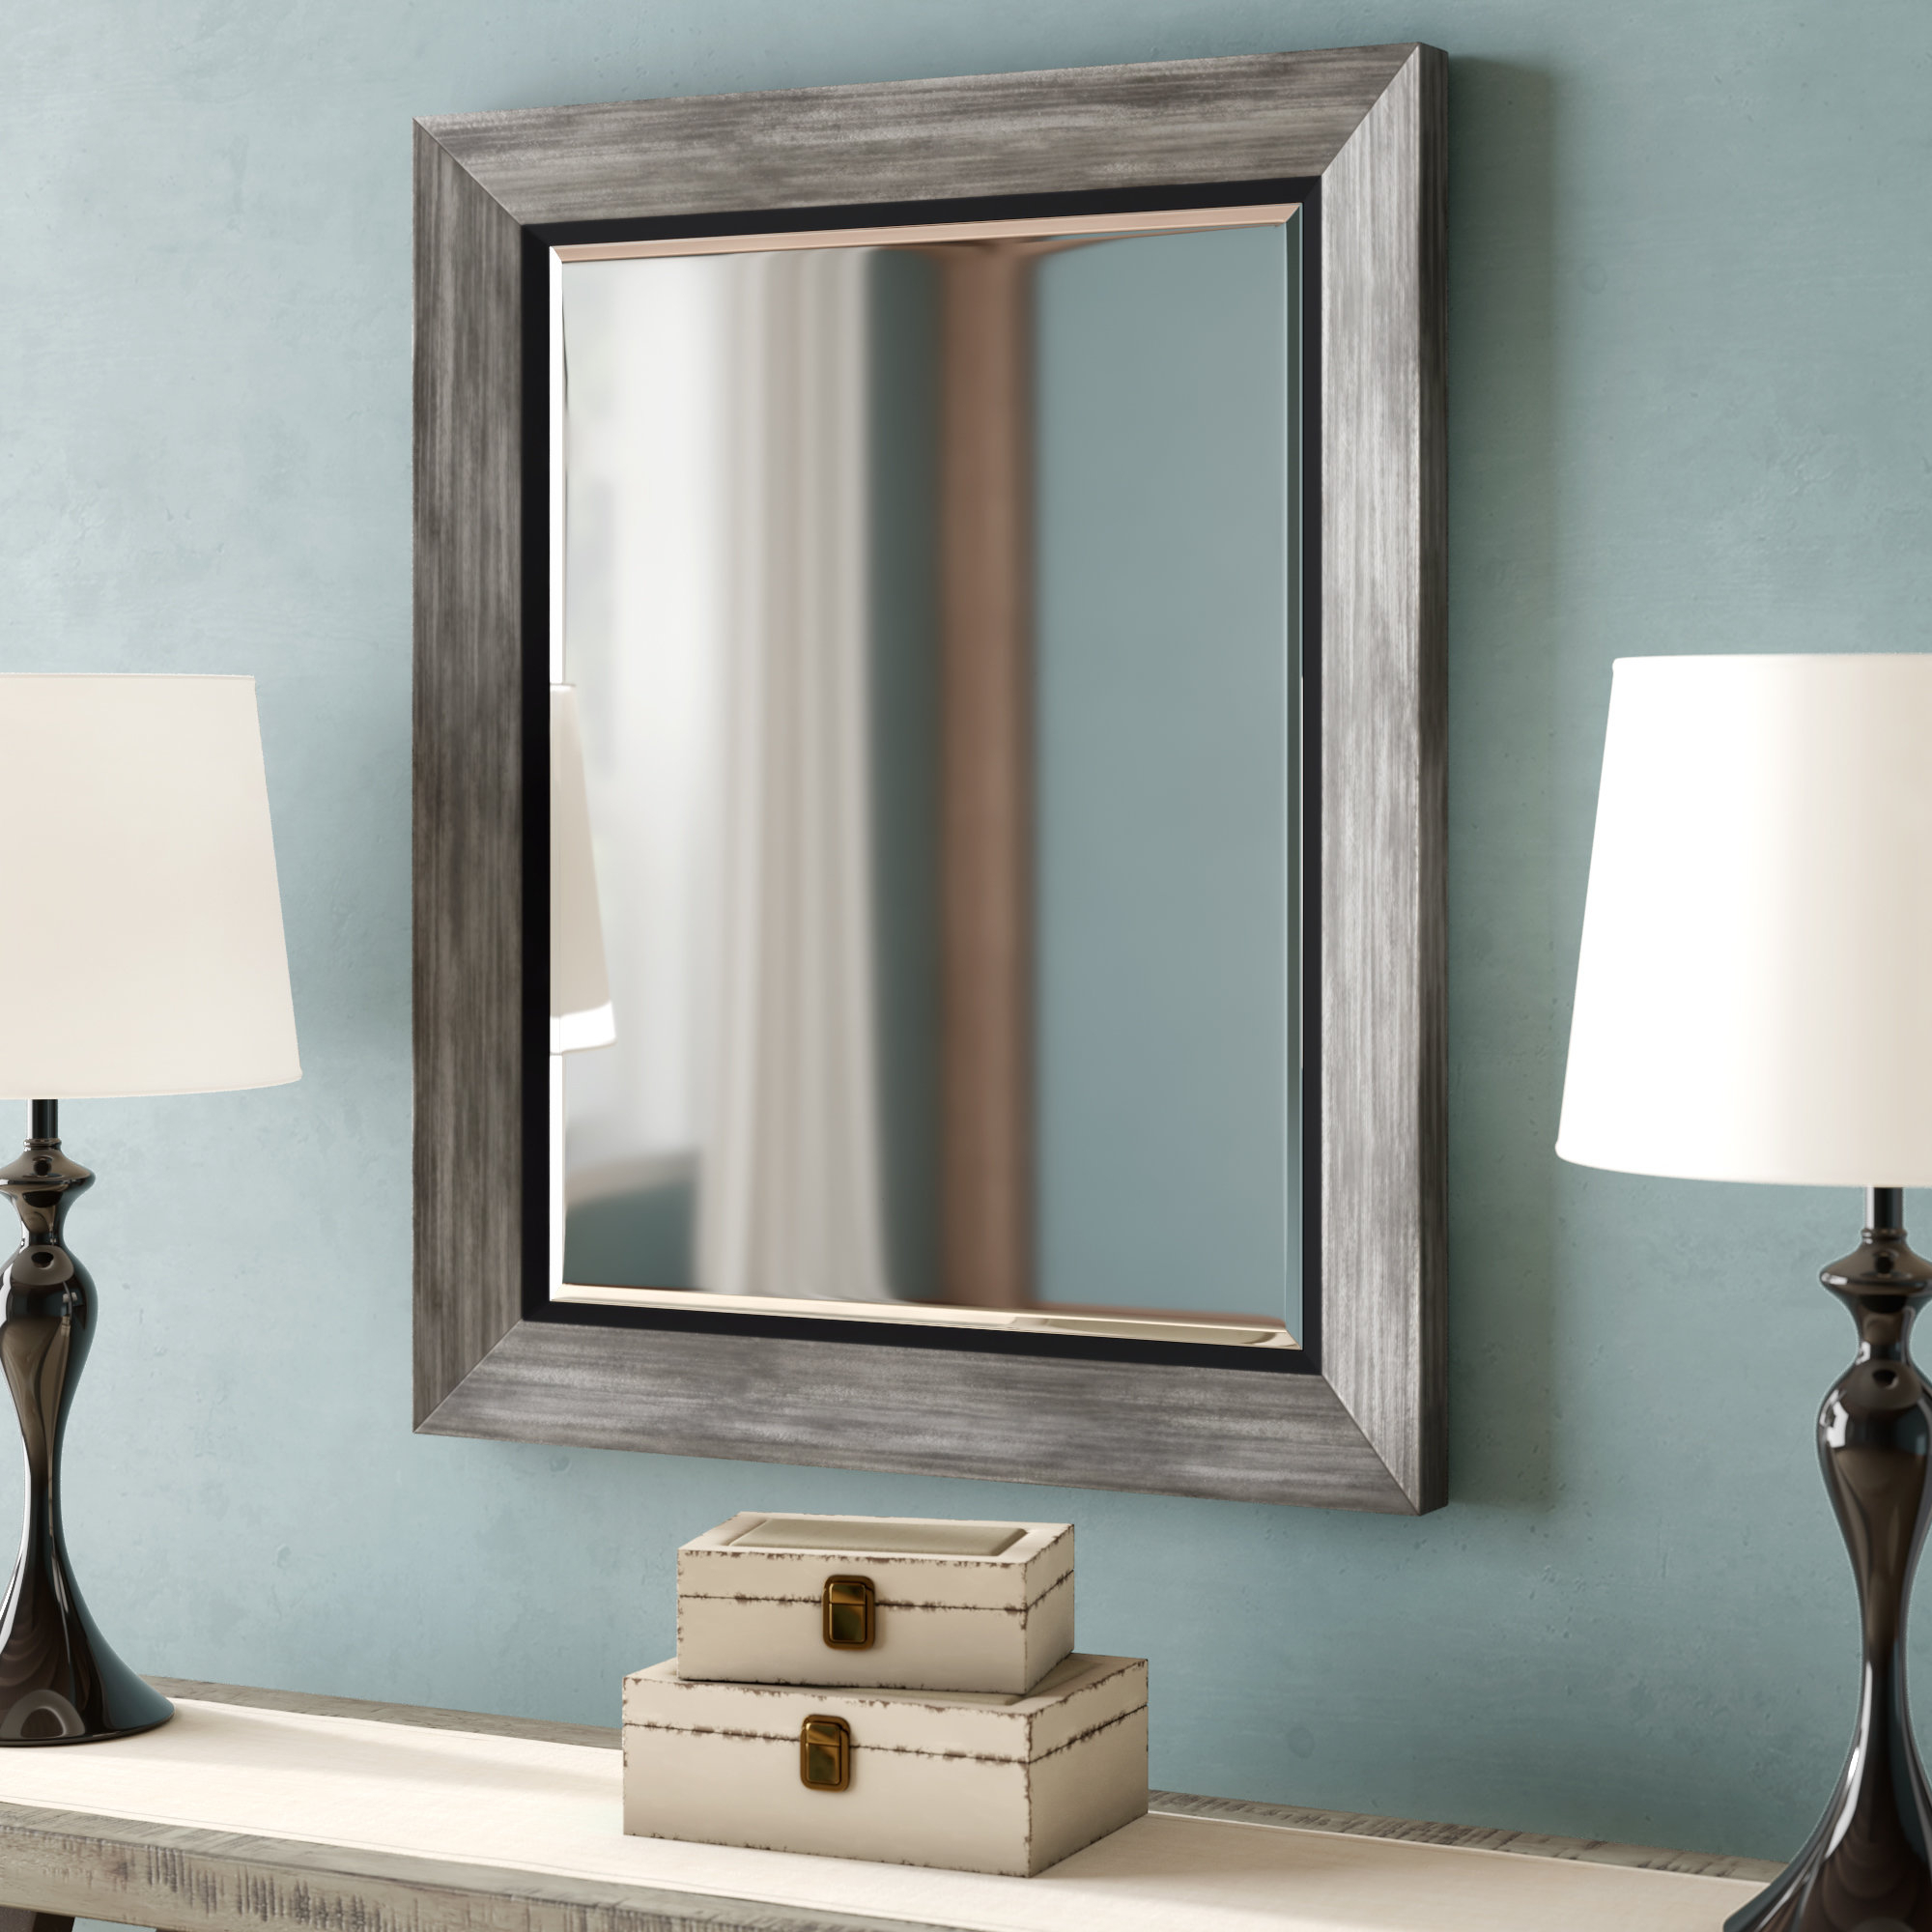 Traditional Beveled Wall Mirrors Regarding Famous Traditional Beveled Wall Mirror (View 4 of 20)